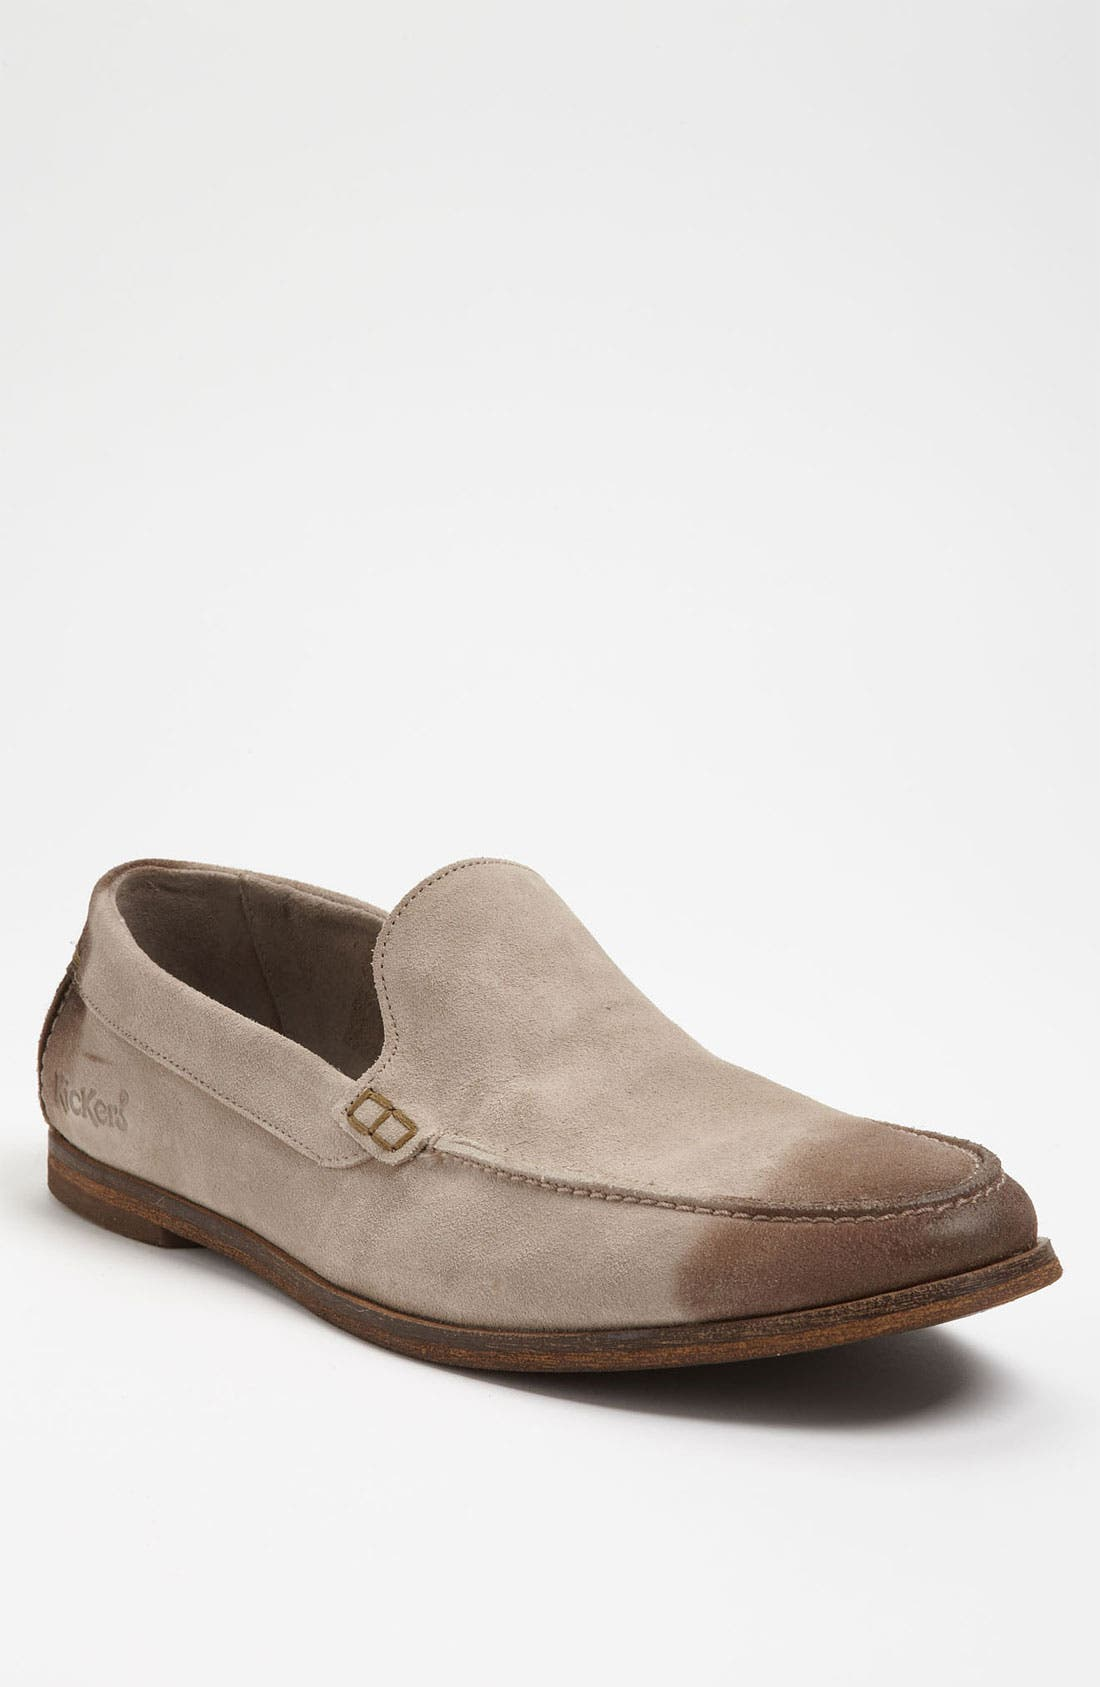 Main Image - Kickers 'Ringo' Loafer